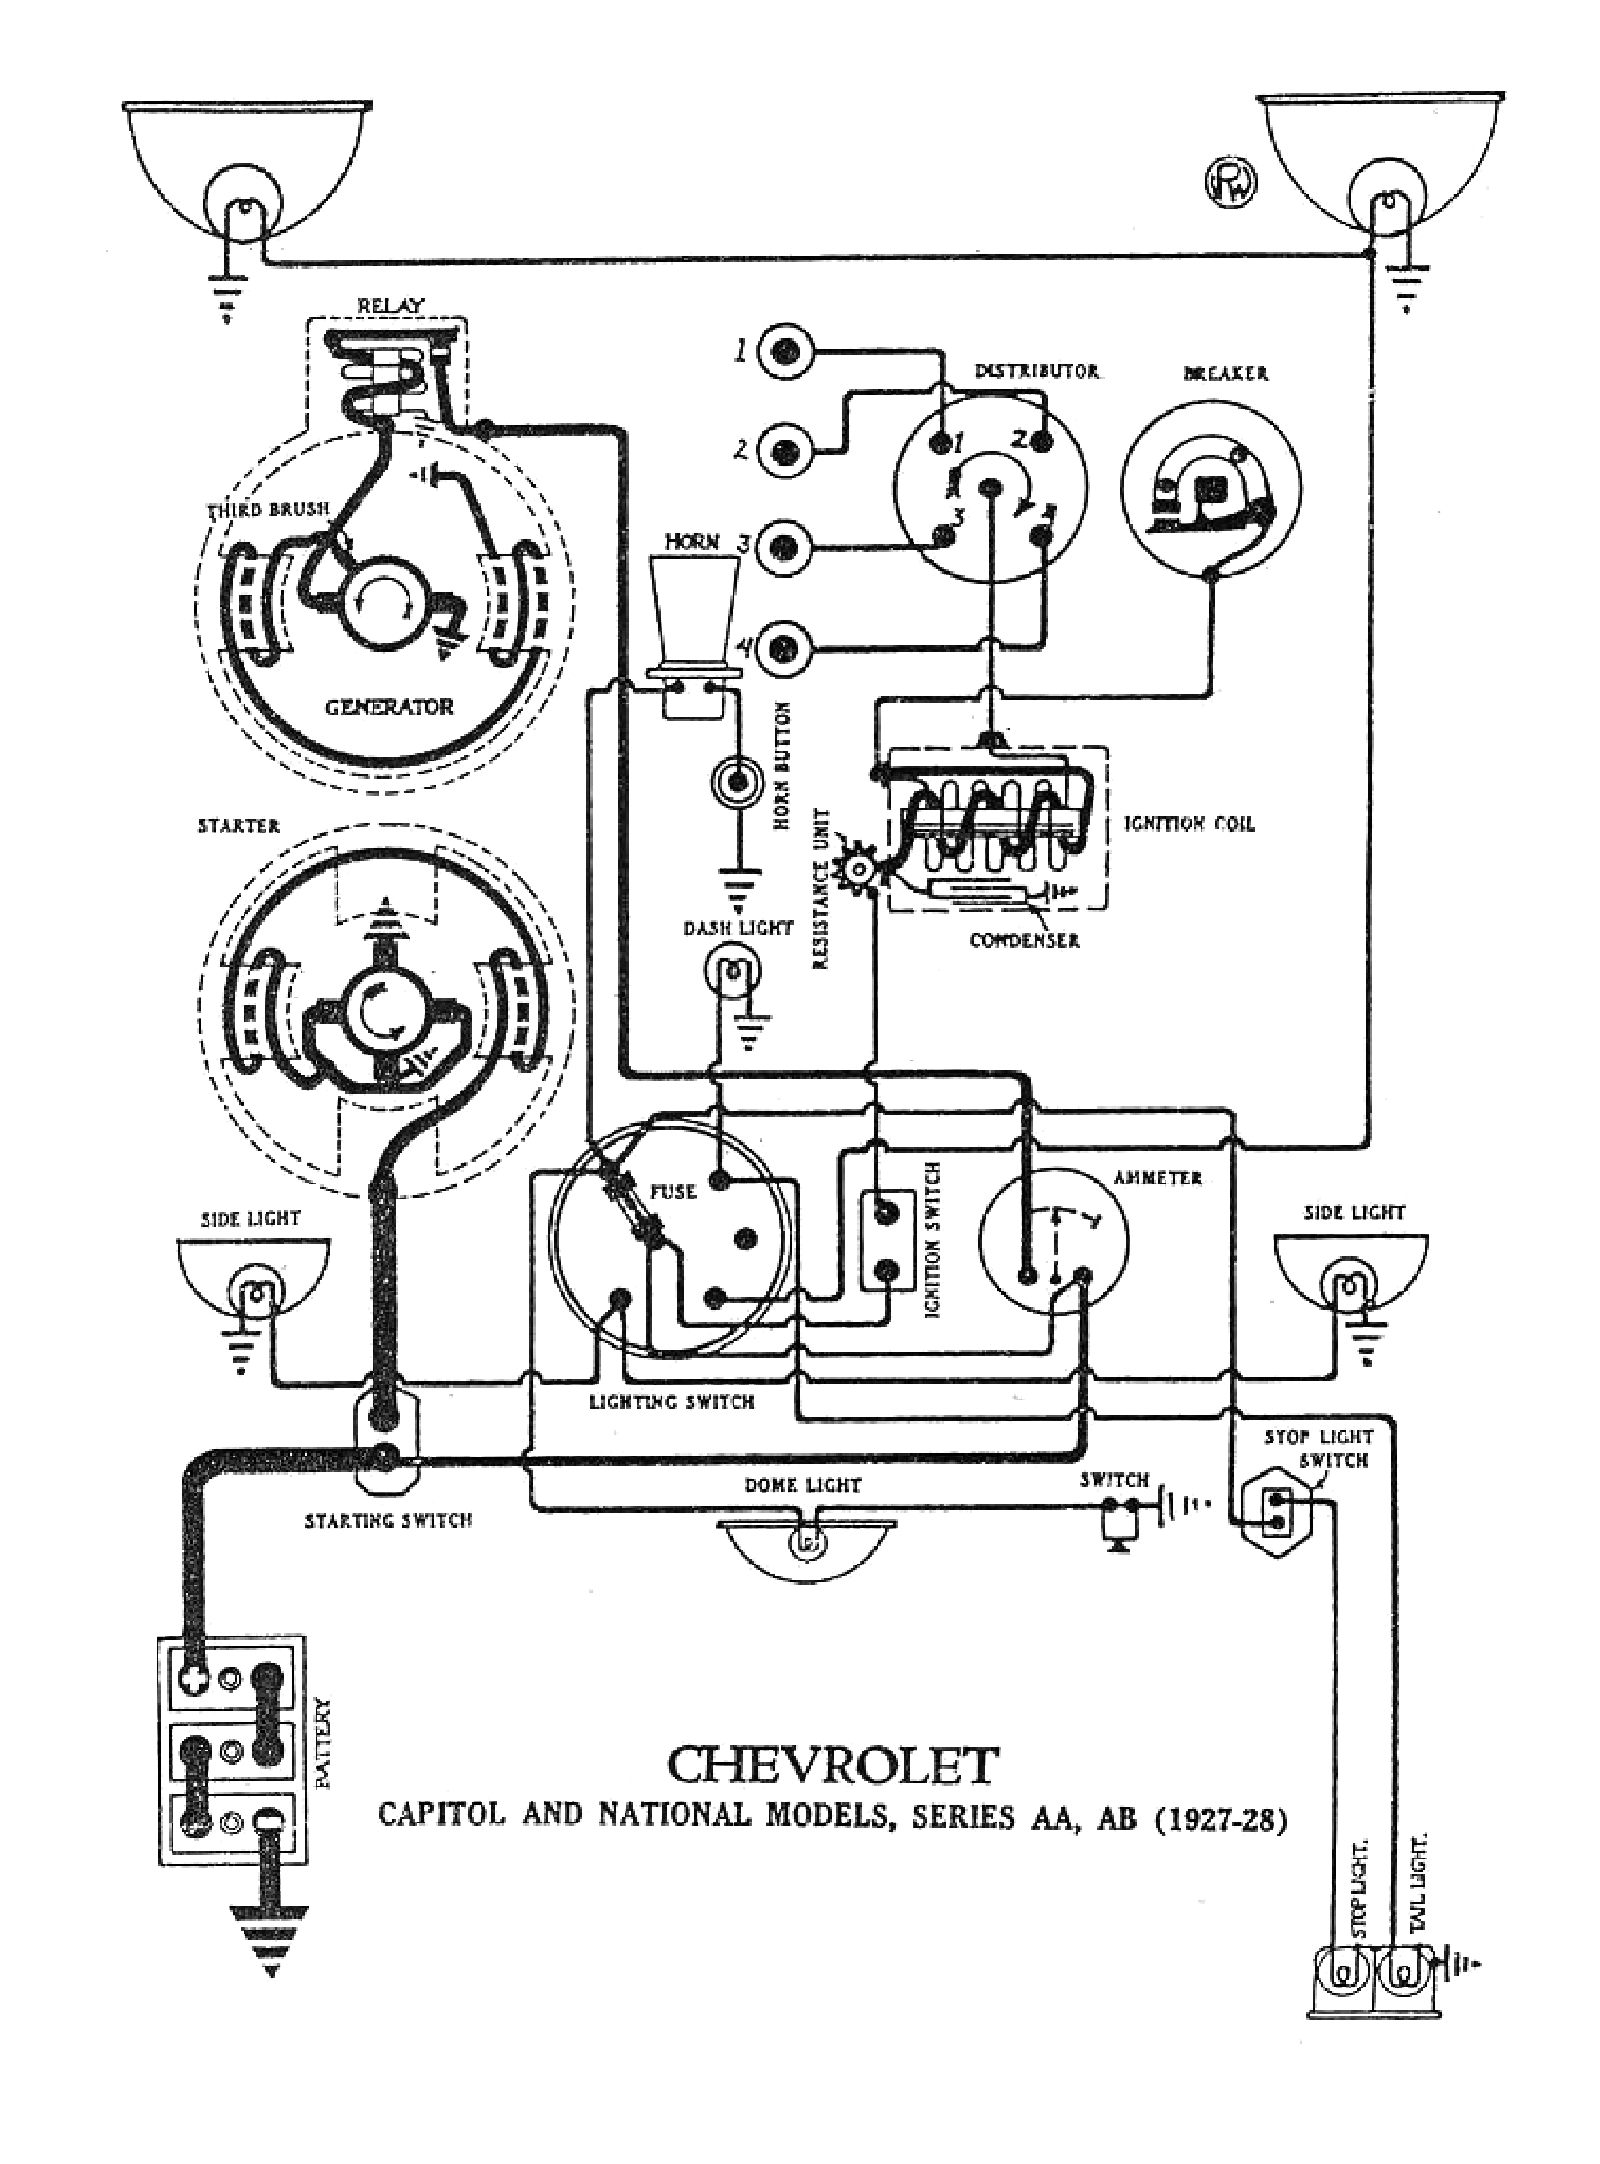 Chevy 305 Distributor Wiring Great Installation Of Diagram 454 Library Rh 16 Mac Happen De 1985